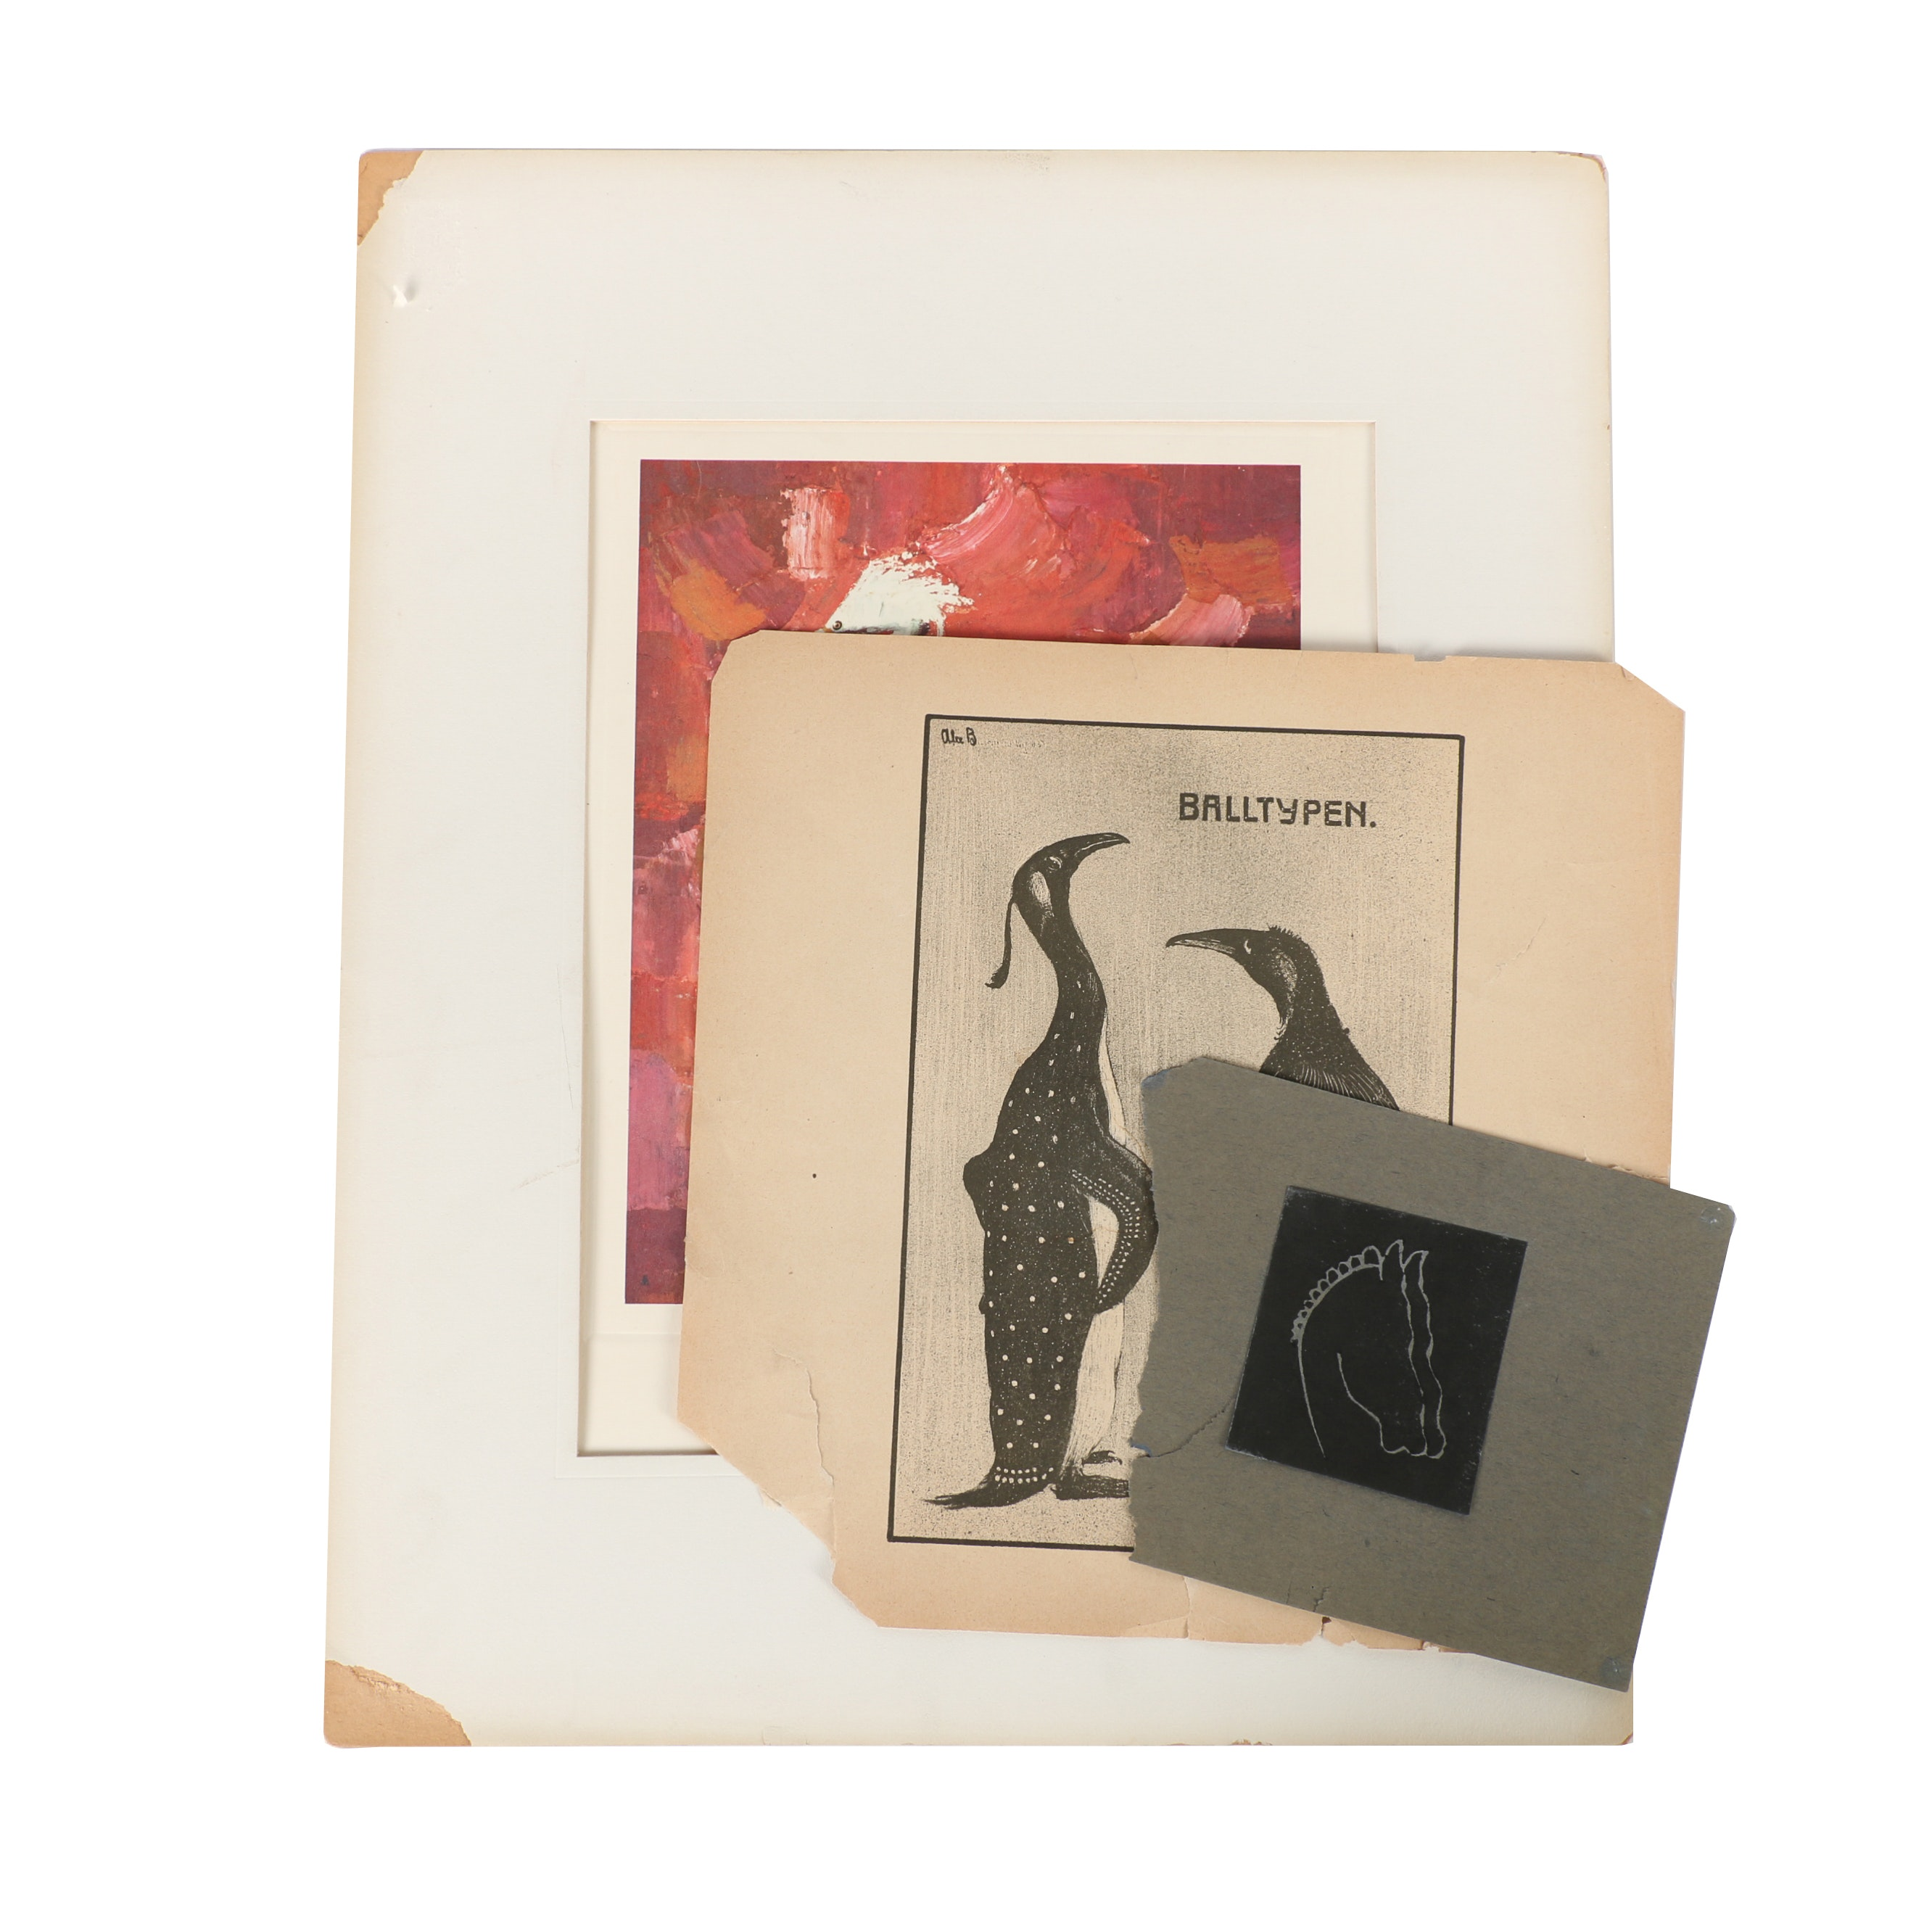 Reproduction Prints After Painting and Etchings Featuring E. Fred Anderson